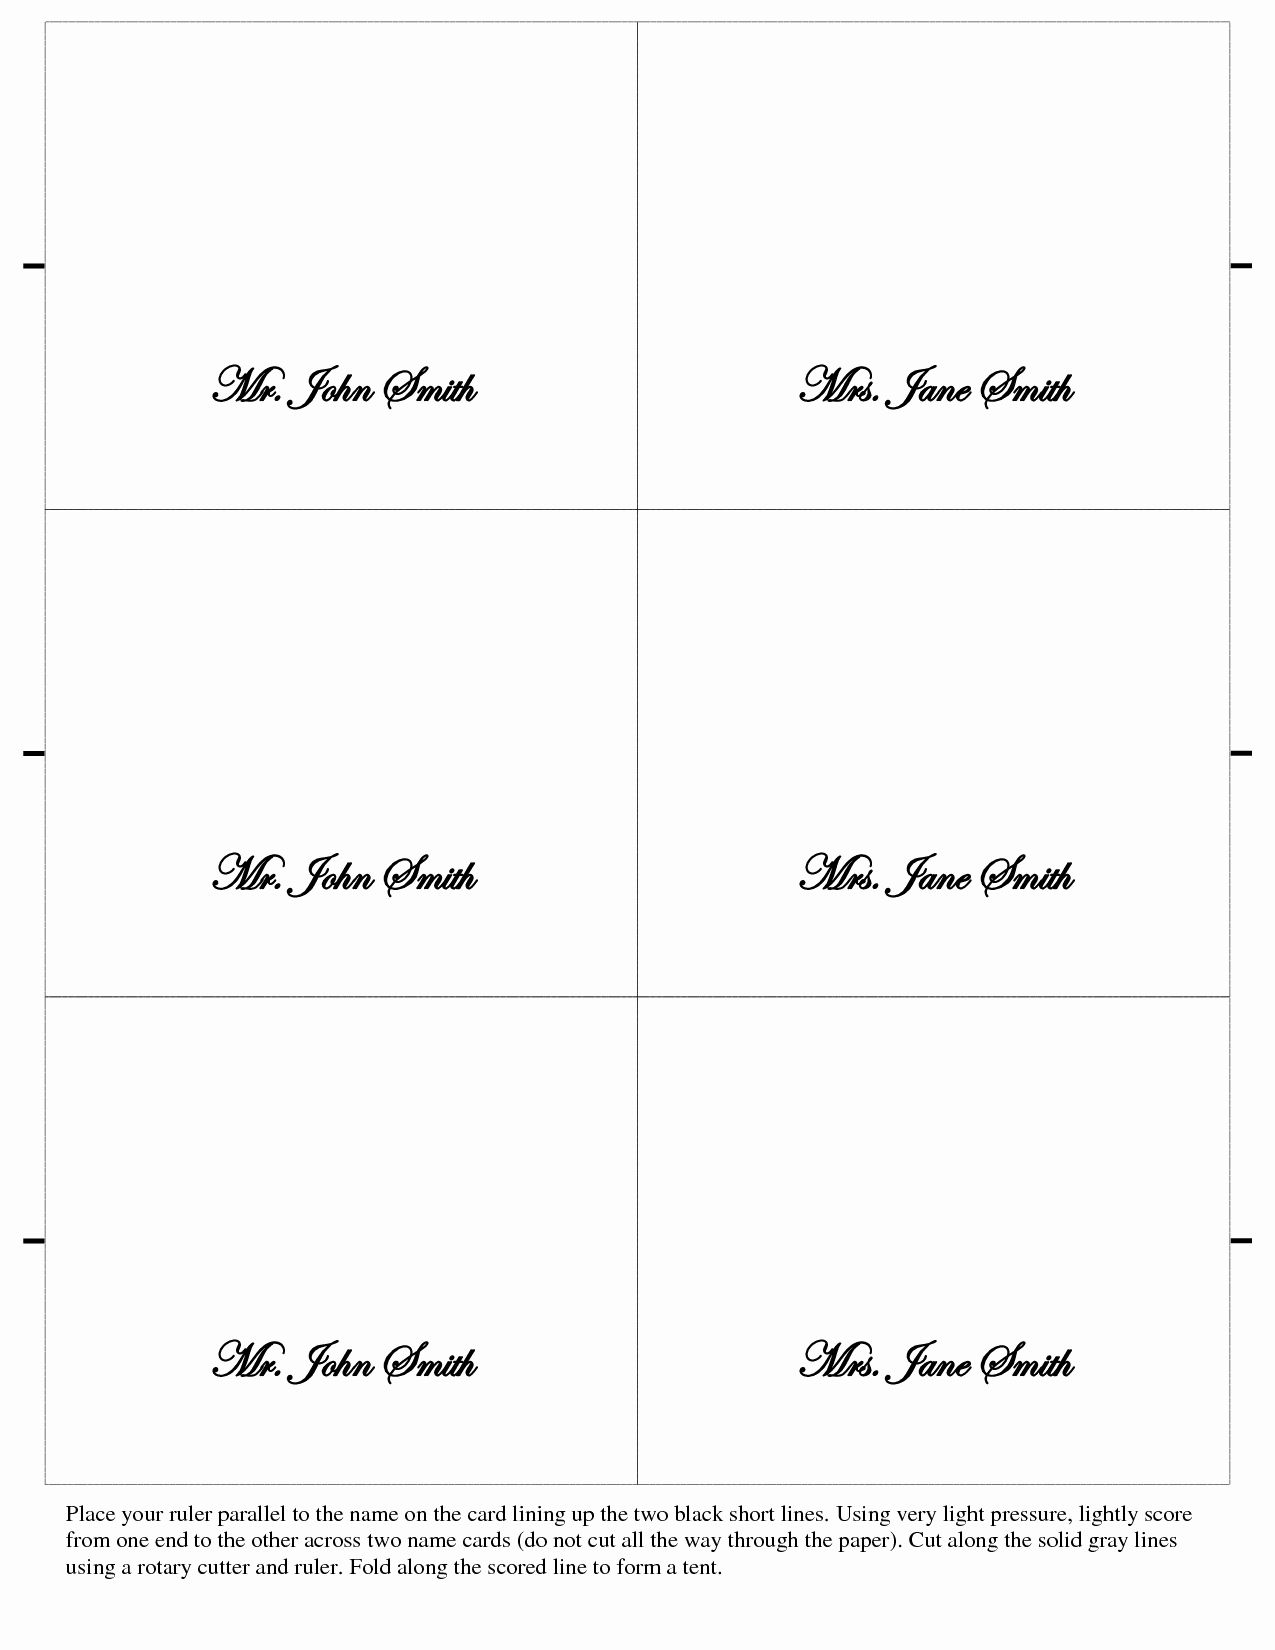 Free Place Card Template Beautiful Card Printable Gallery Category Page 42 In 2020 Place Card Template Card Templates Printable Wedding Place Card Templates